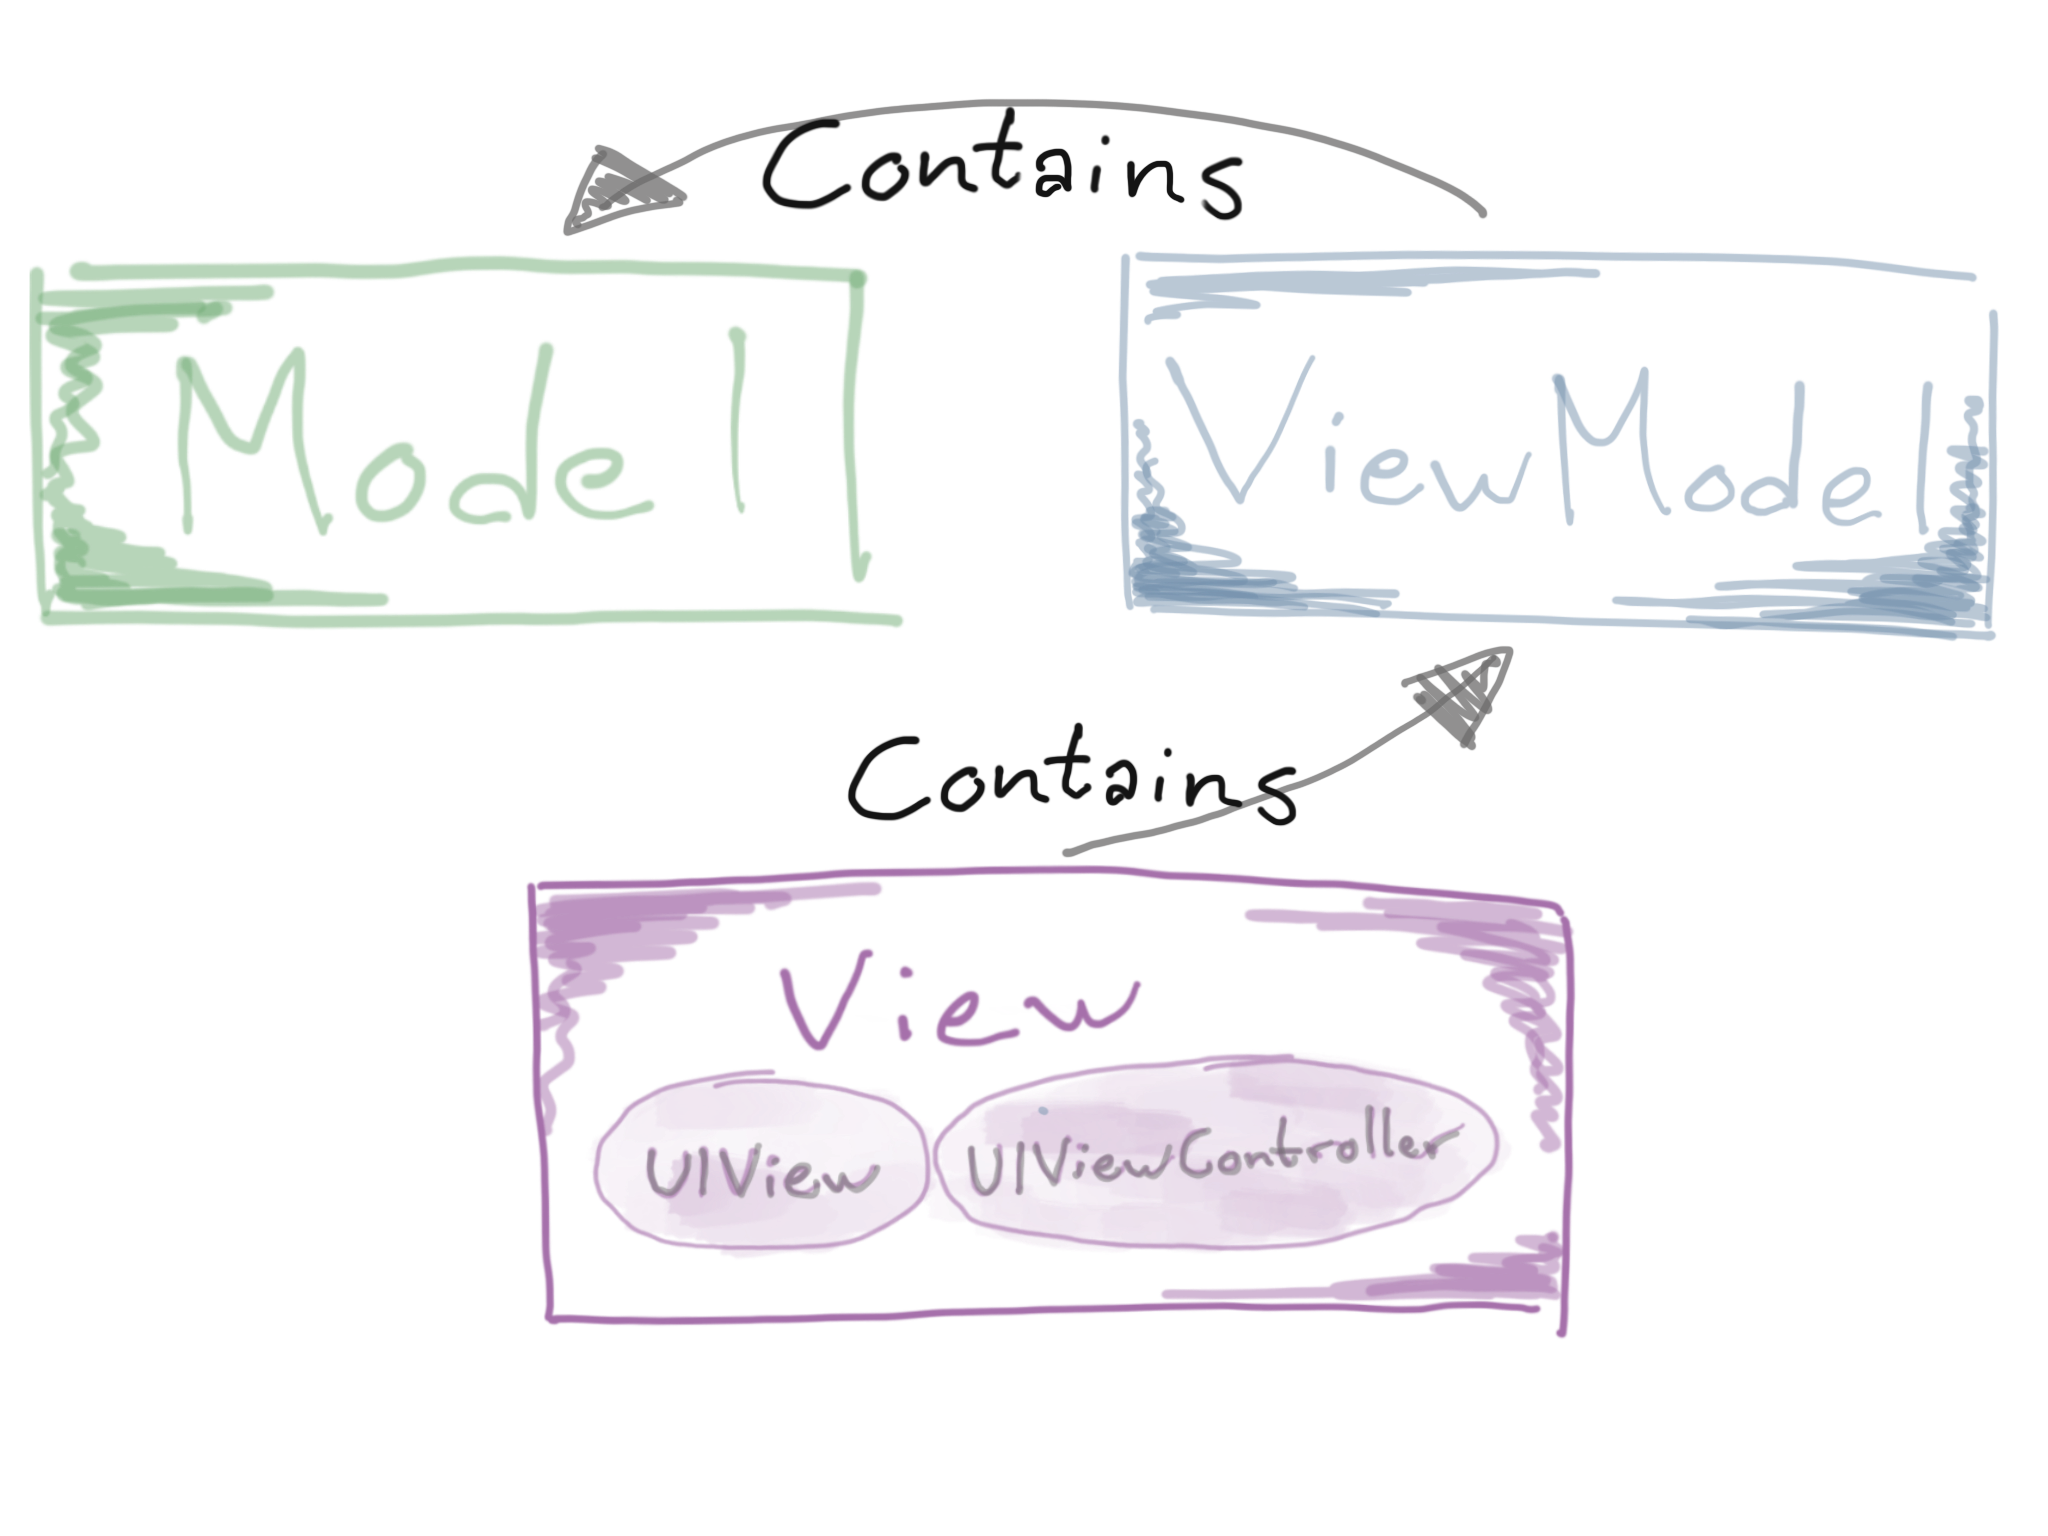 Relationship Between MVVM's Components Visualized